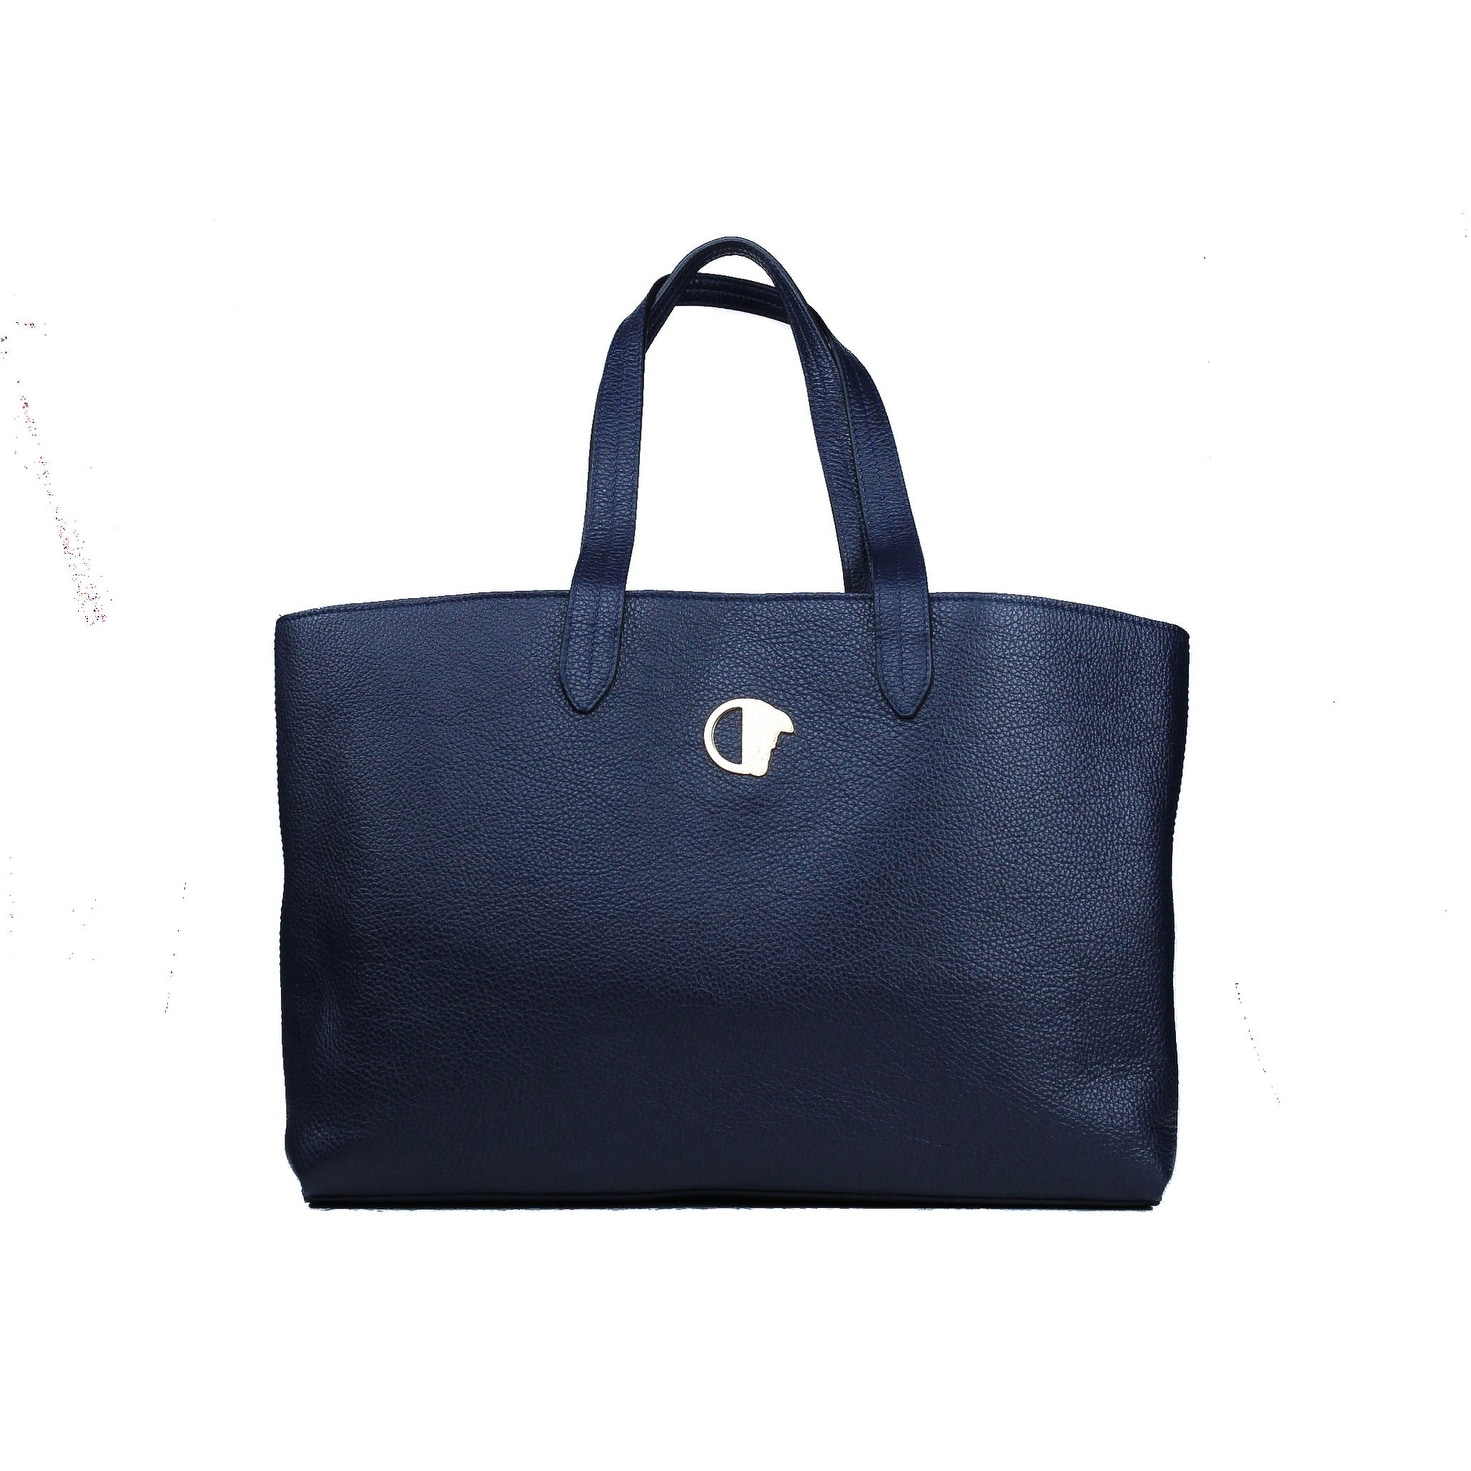 ddcafb2524 Versace Collection Navy Pebbled Leather Medusa Logo Top Handle Tote Bag